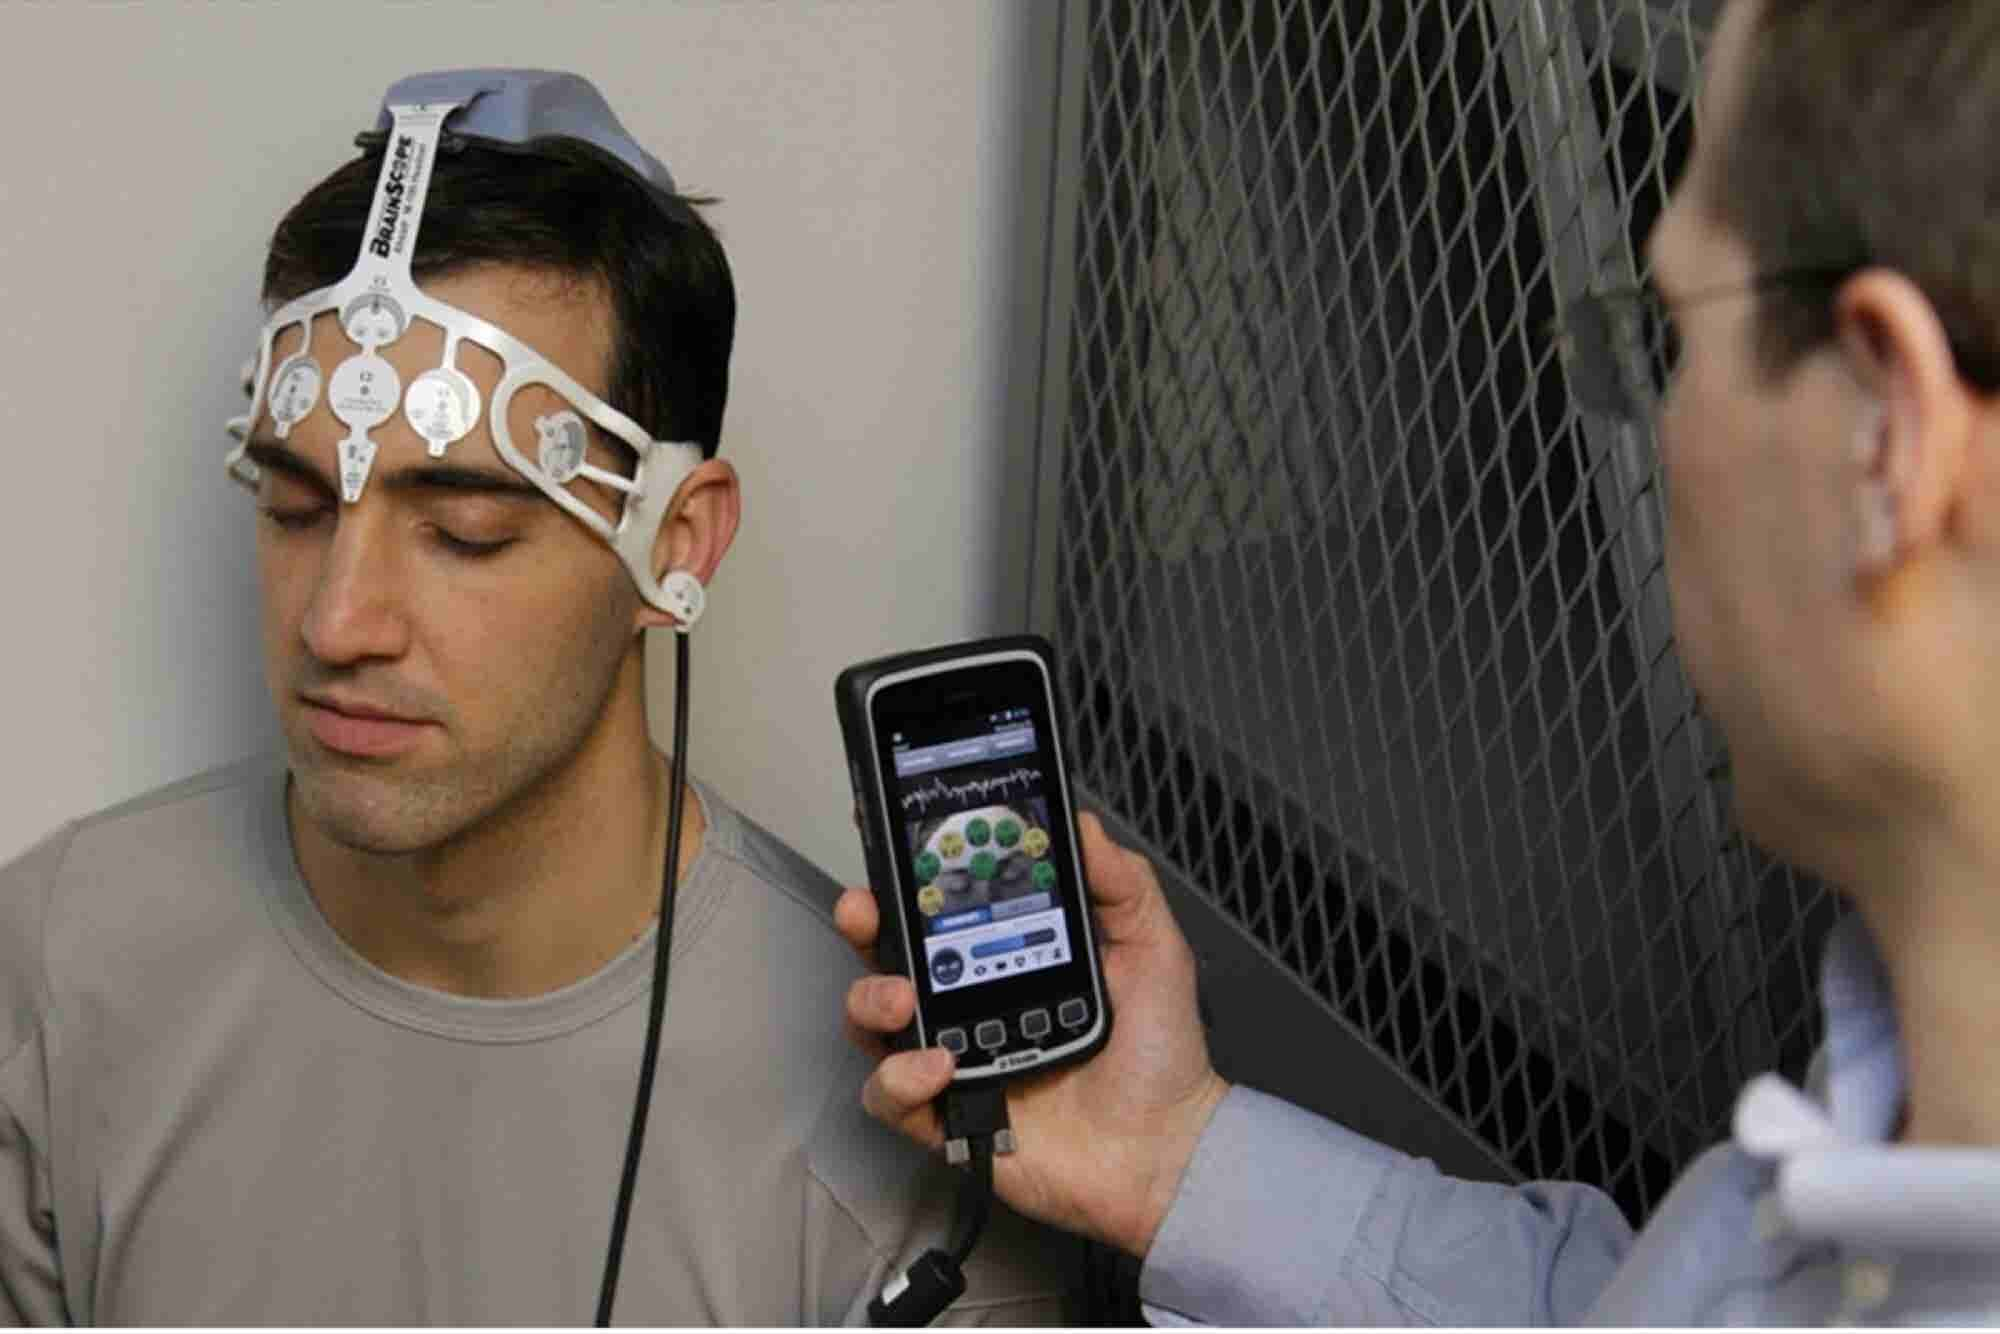 GE and NFL Team Up to Fund Research Into Concussion Detection